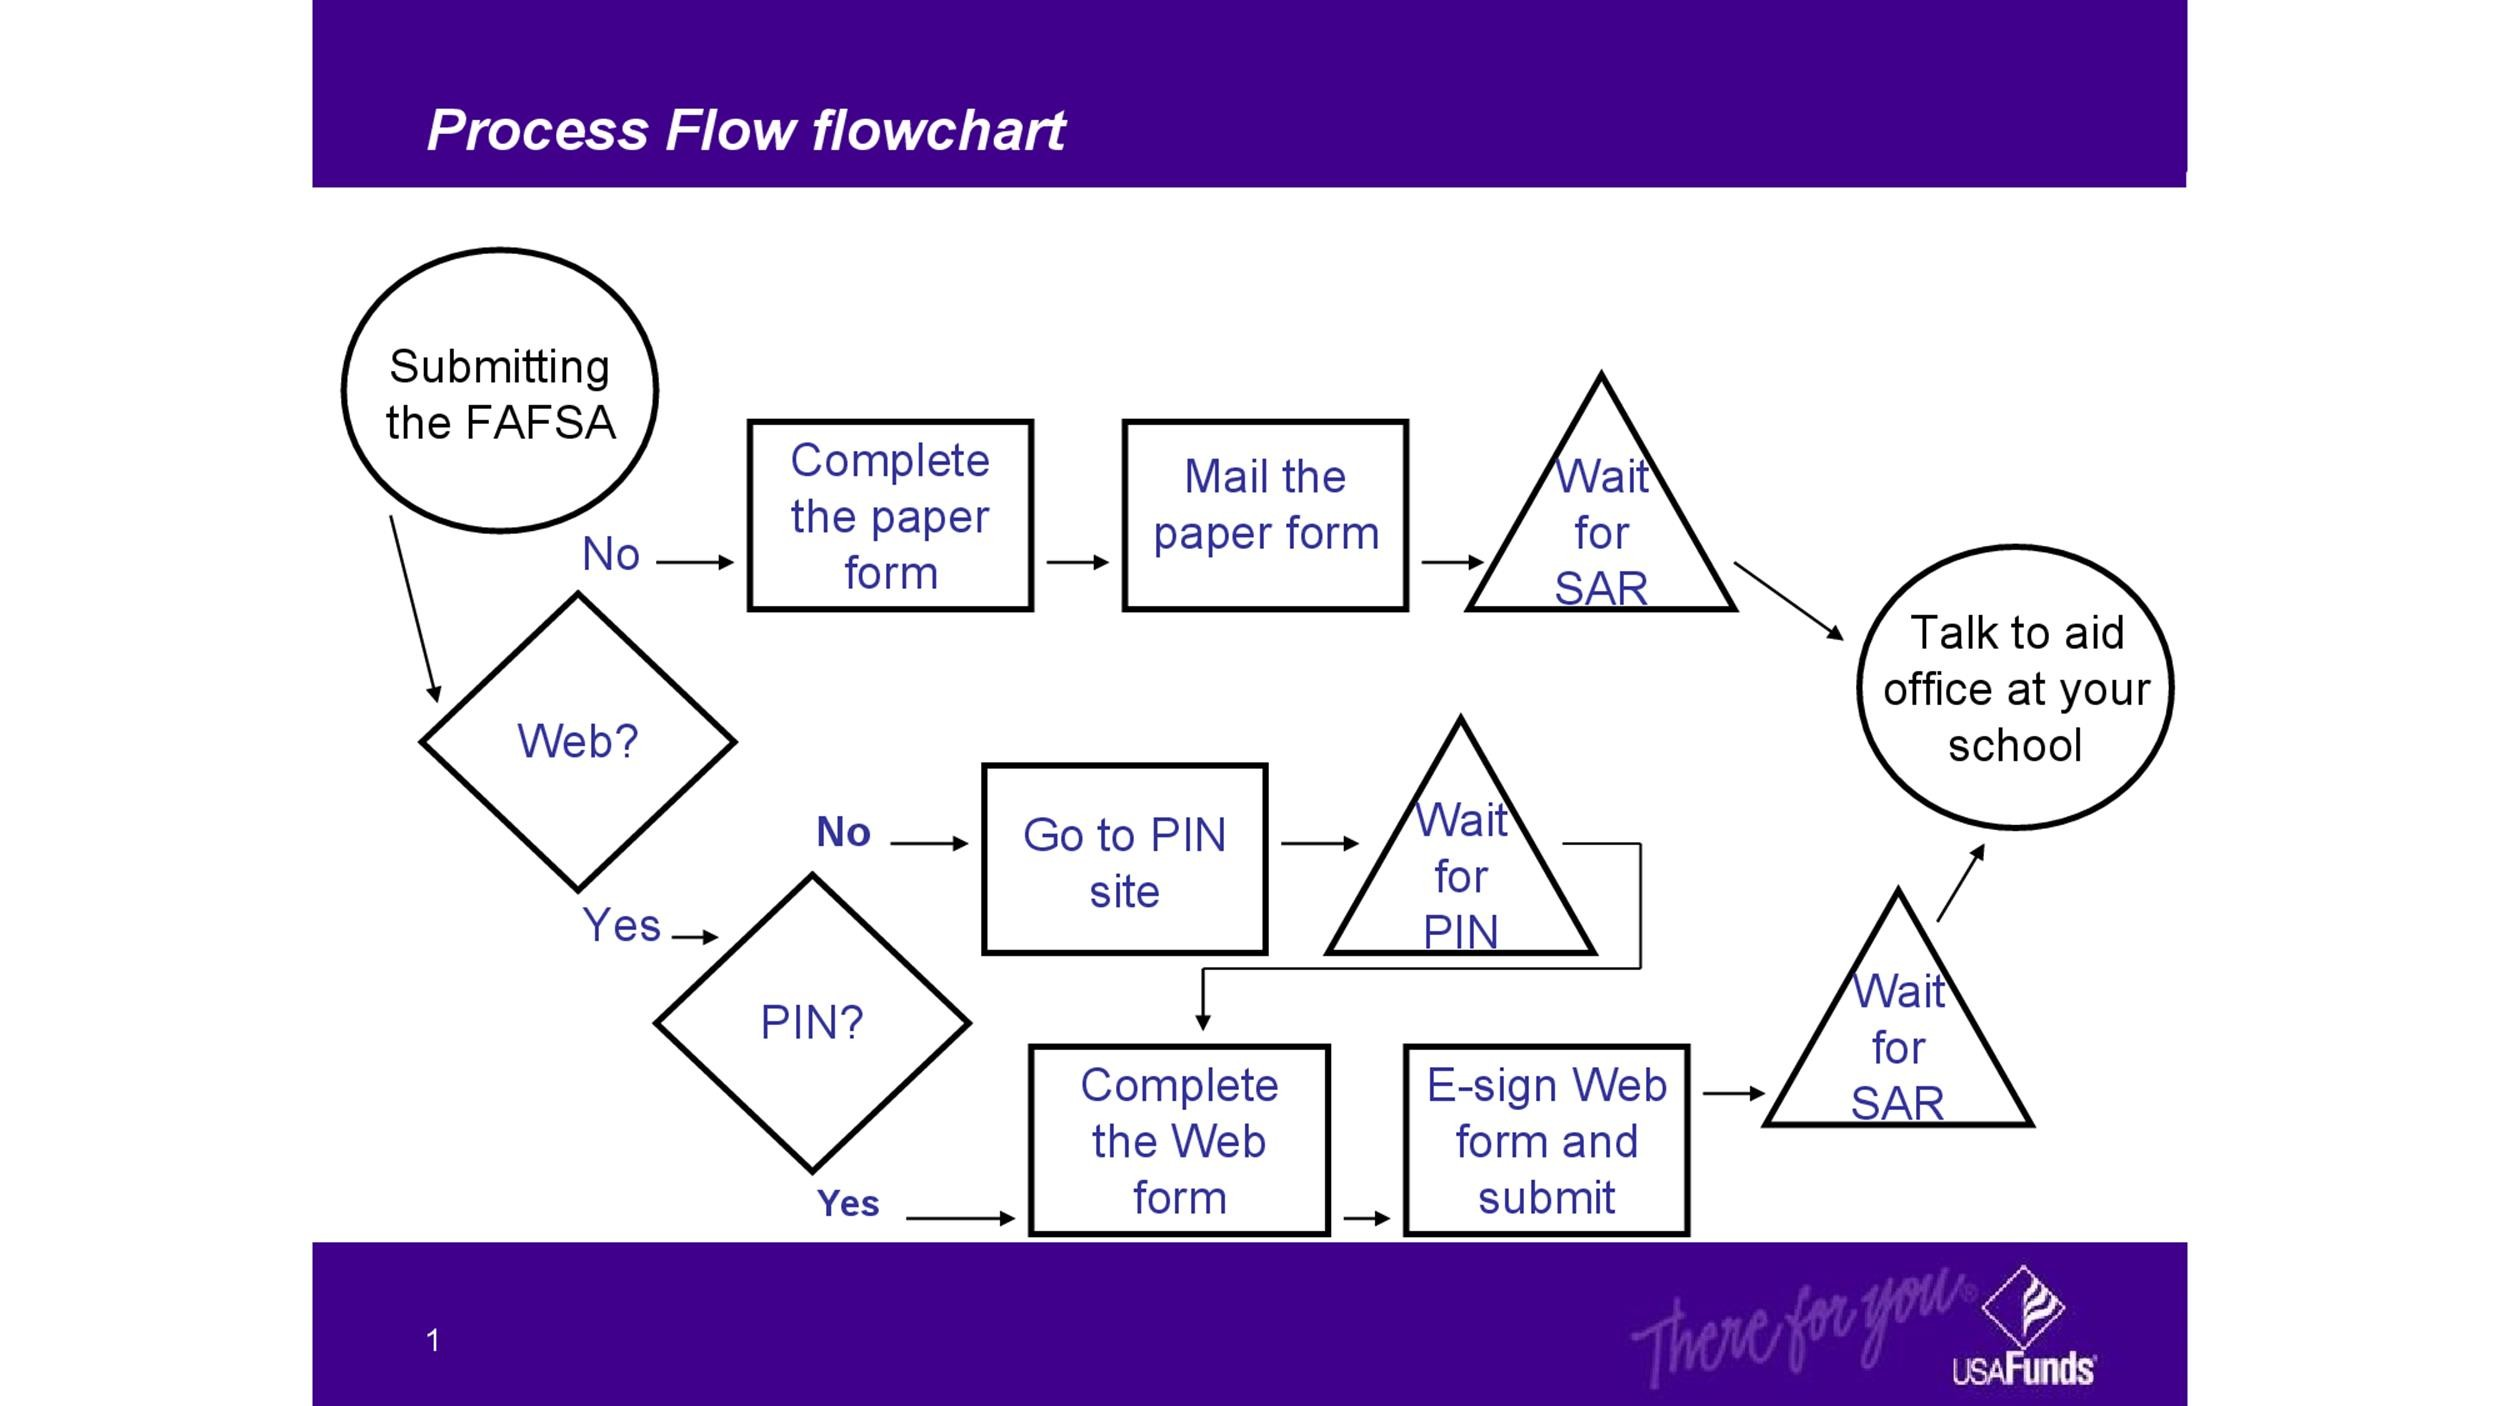 40 Fantastic Flow Chart Templates Word, Excel, Power Point - Flow Chart Printable